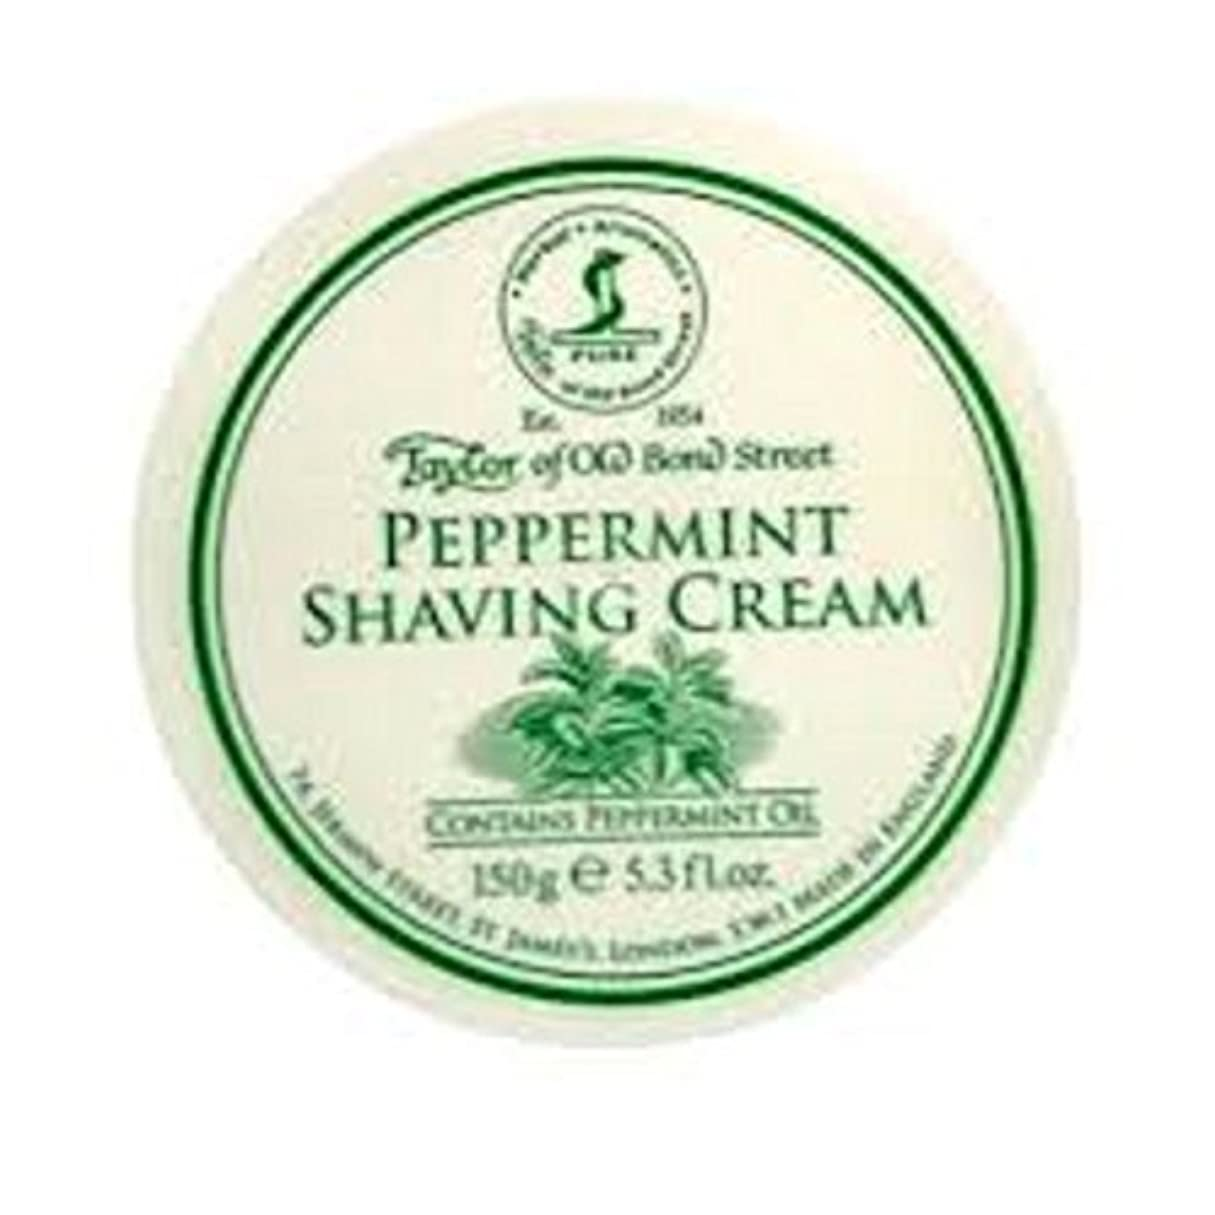 アリーナ回答誤ってTaylors of Old Bond Street 150g Traditional Shaving Cream Tub (Peppermint) by Taylor of Old Bond Street